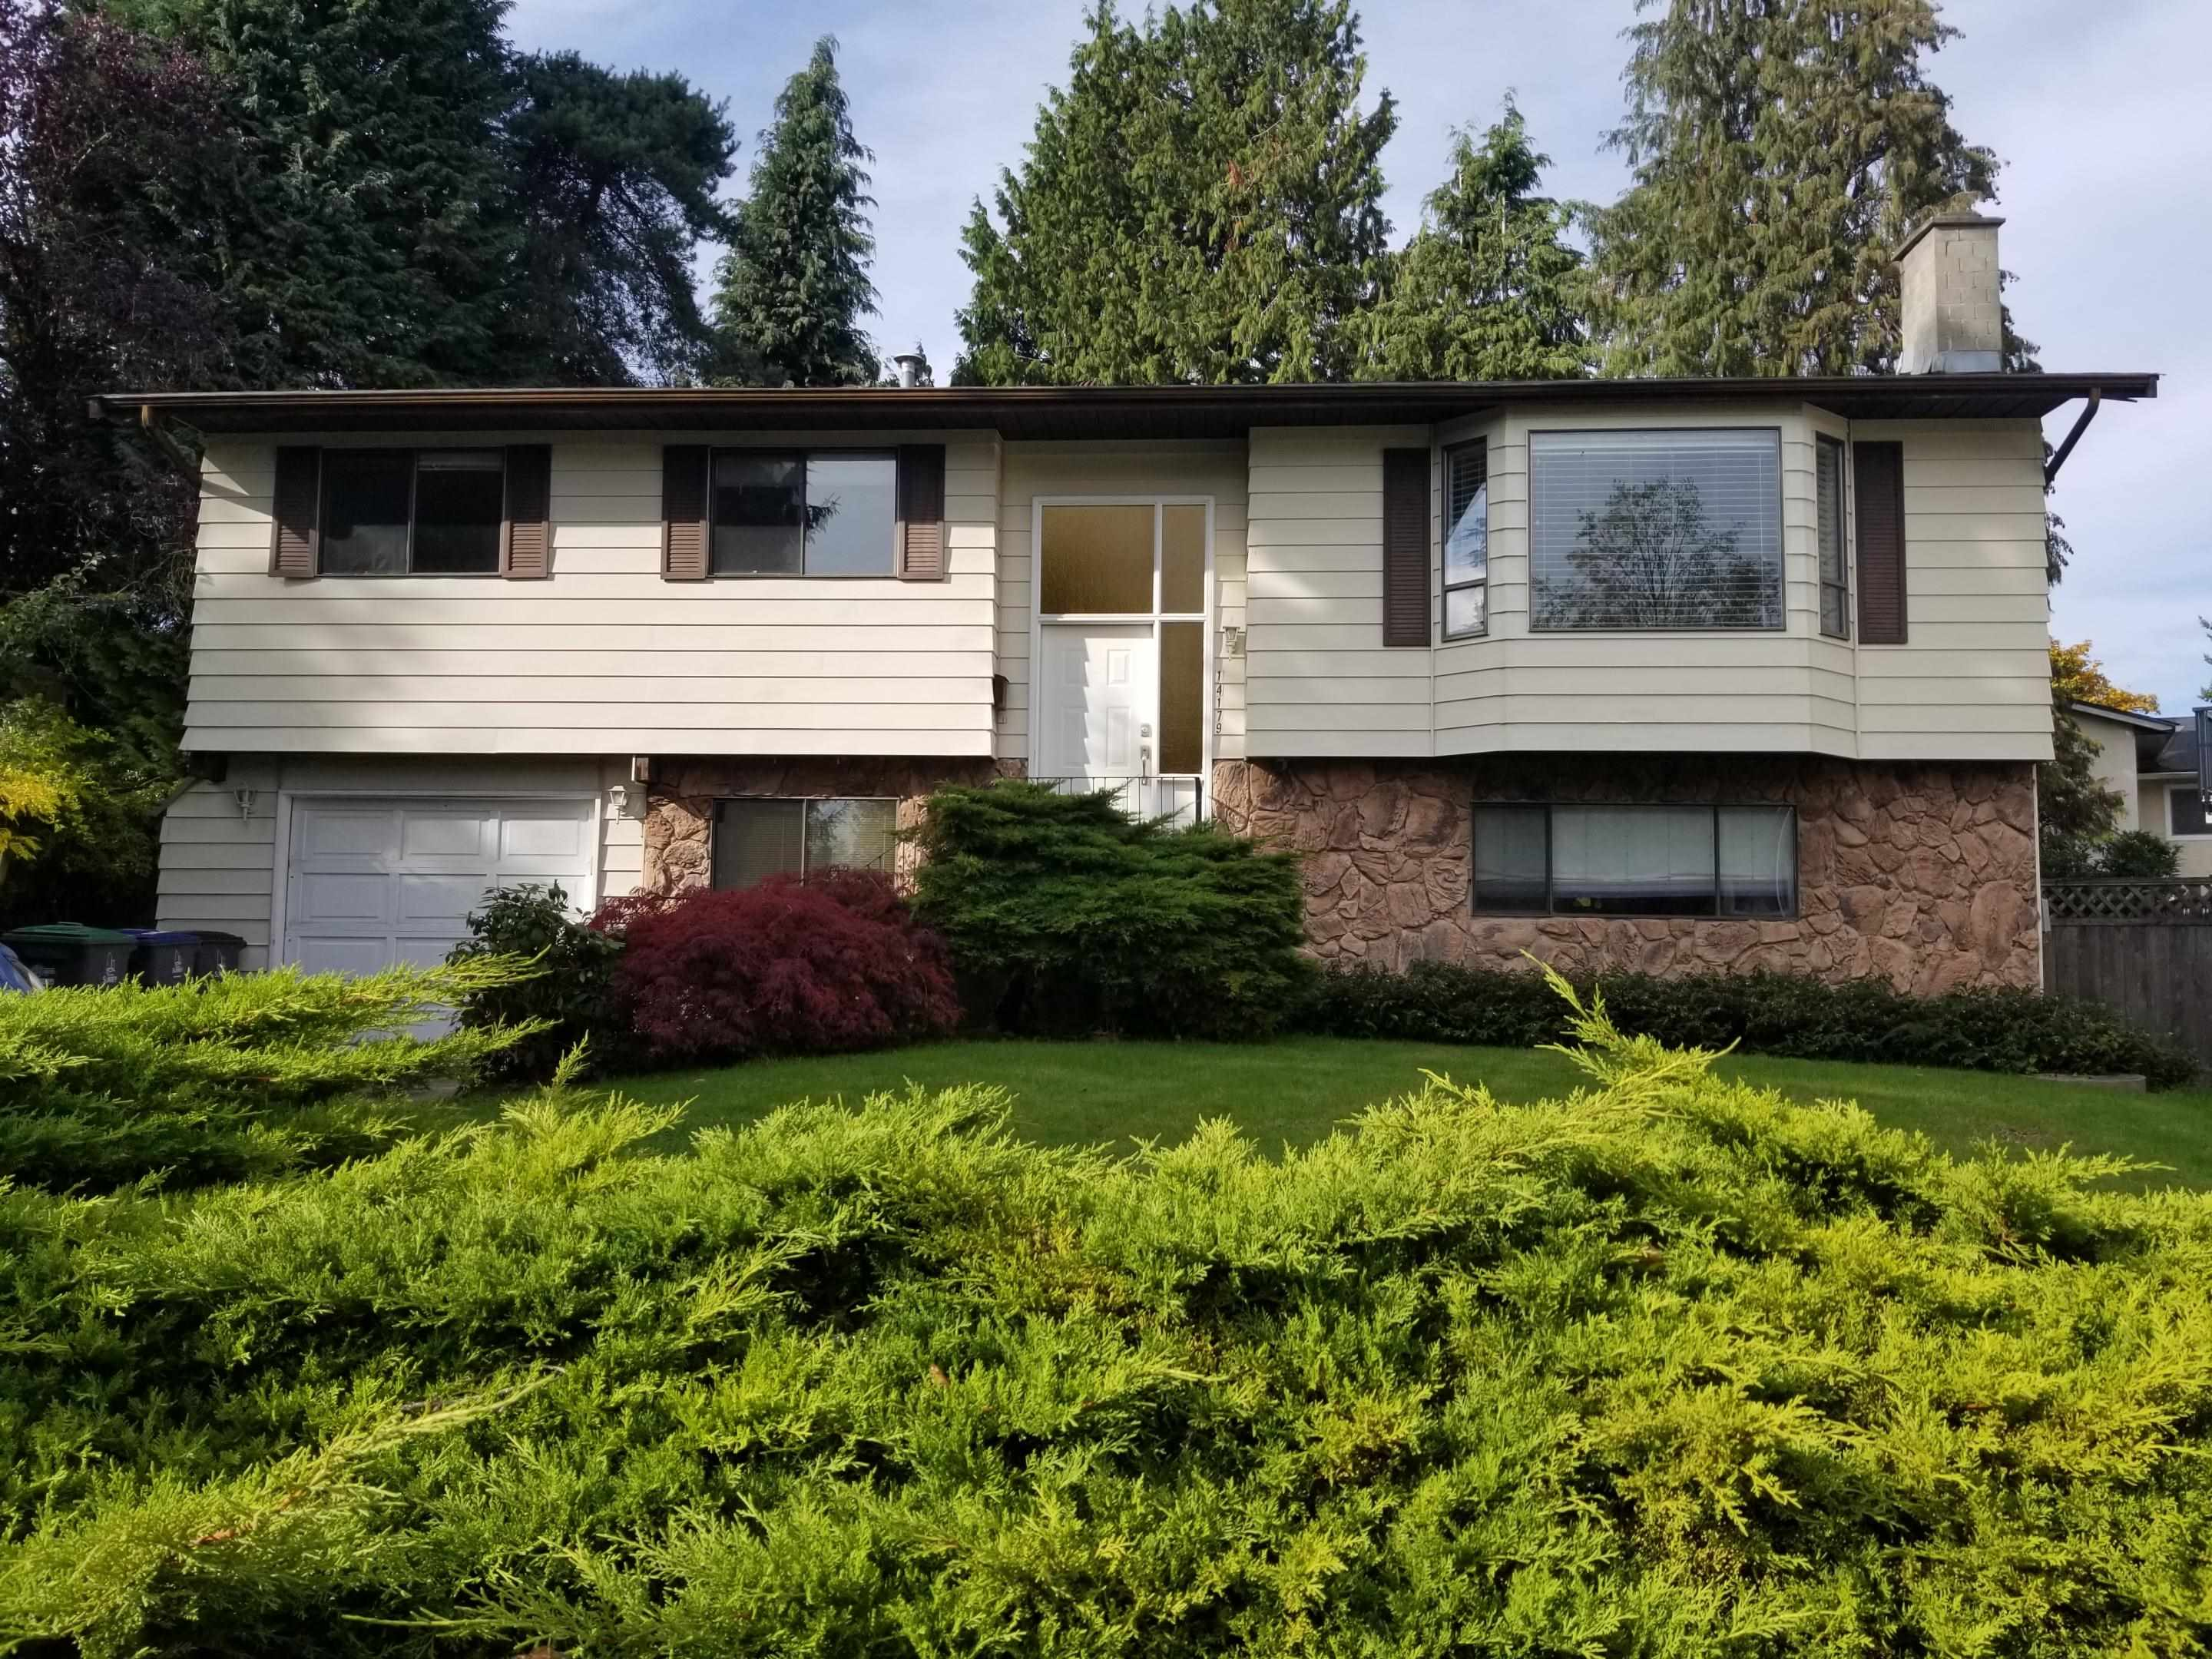 14179 74 AVENUE - East Newton House/Single Family for sale, 4 Bedrooms (R2627910) - #1